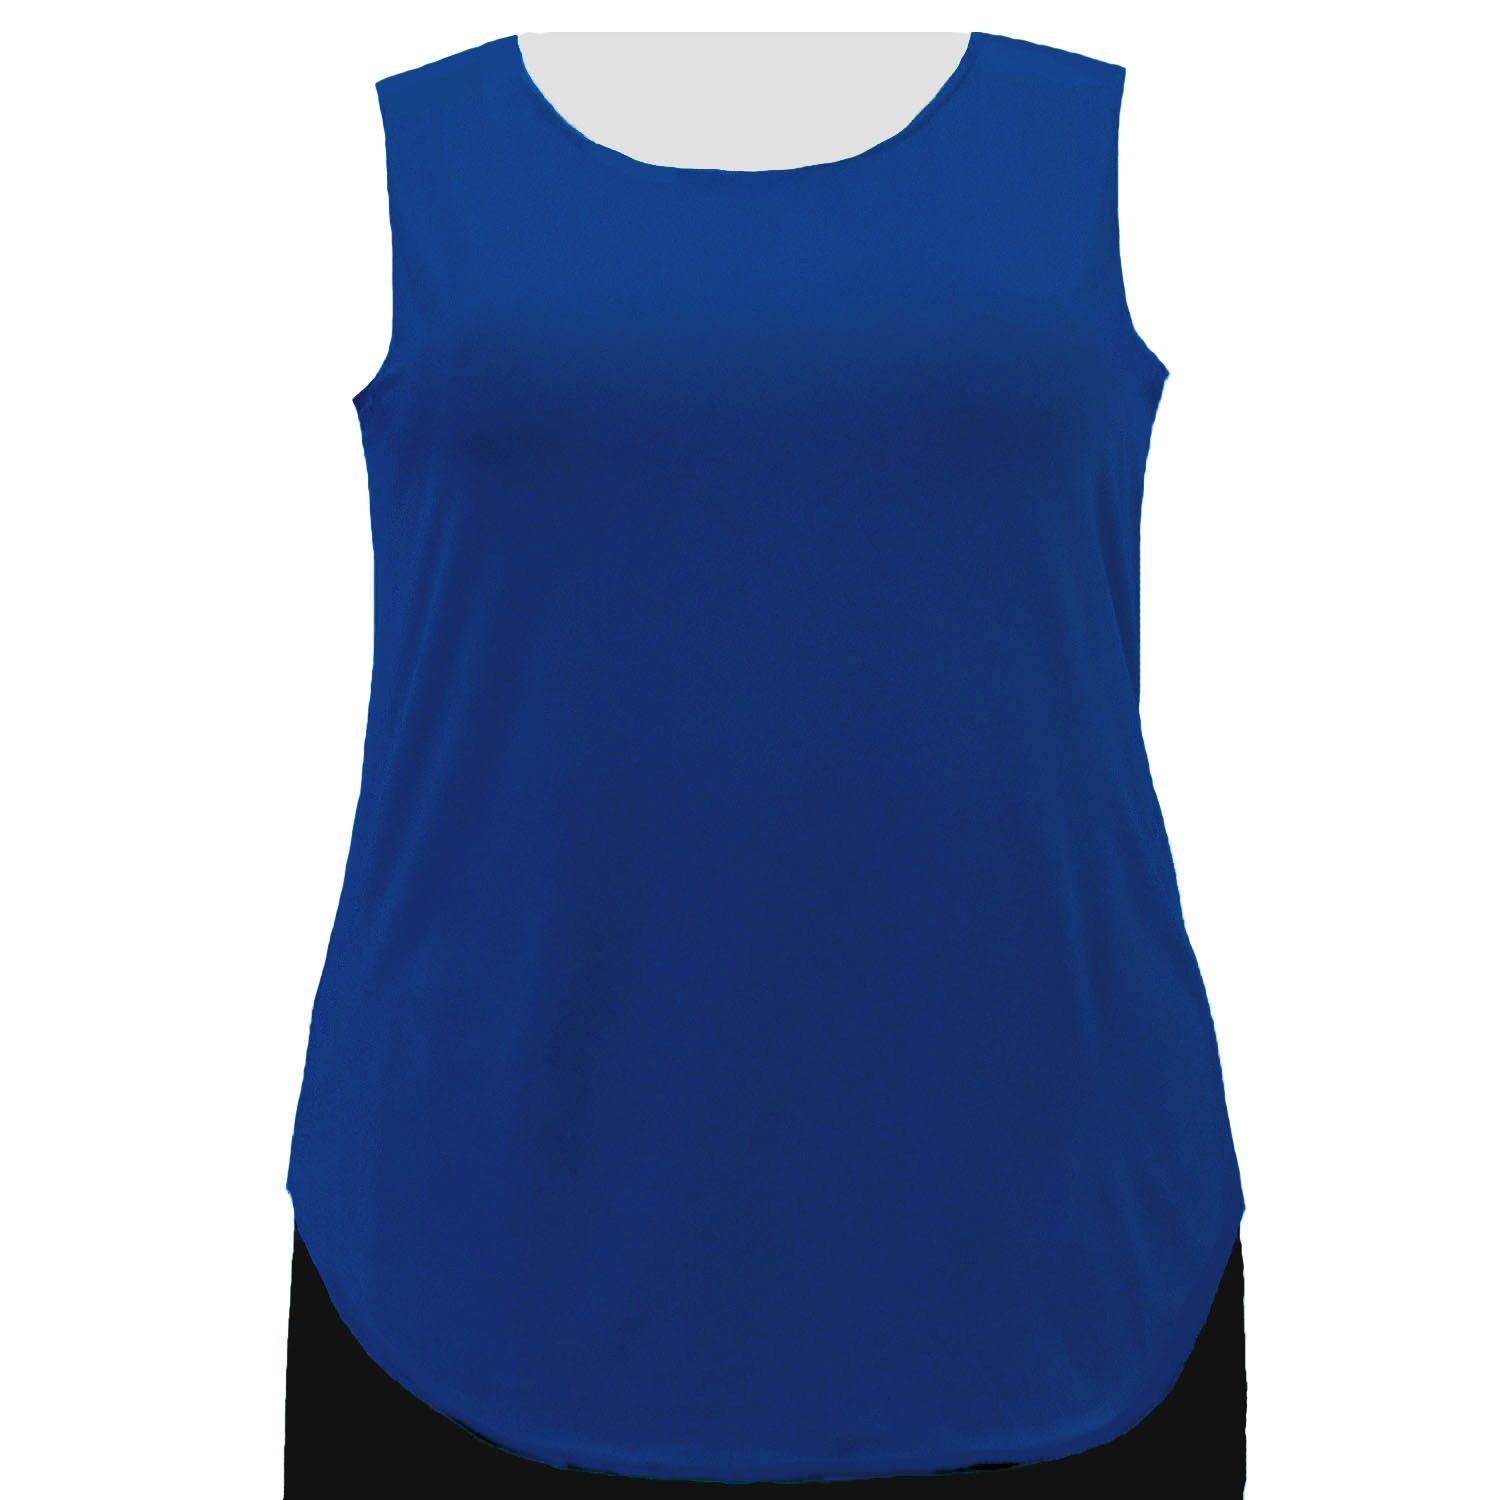 A Personal Touch Women's Plus Size Cobalt Tank Top